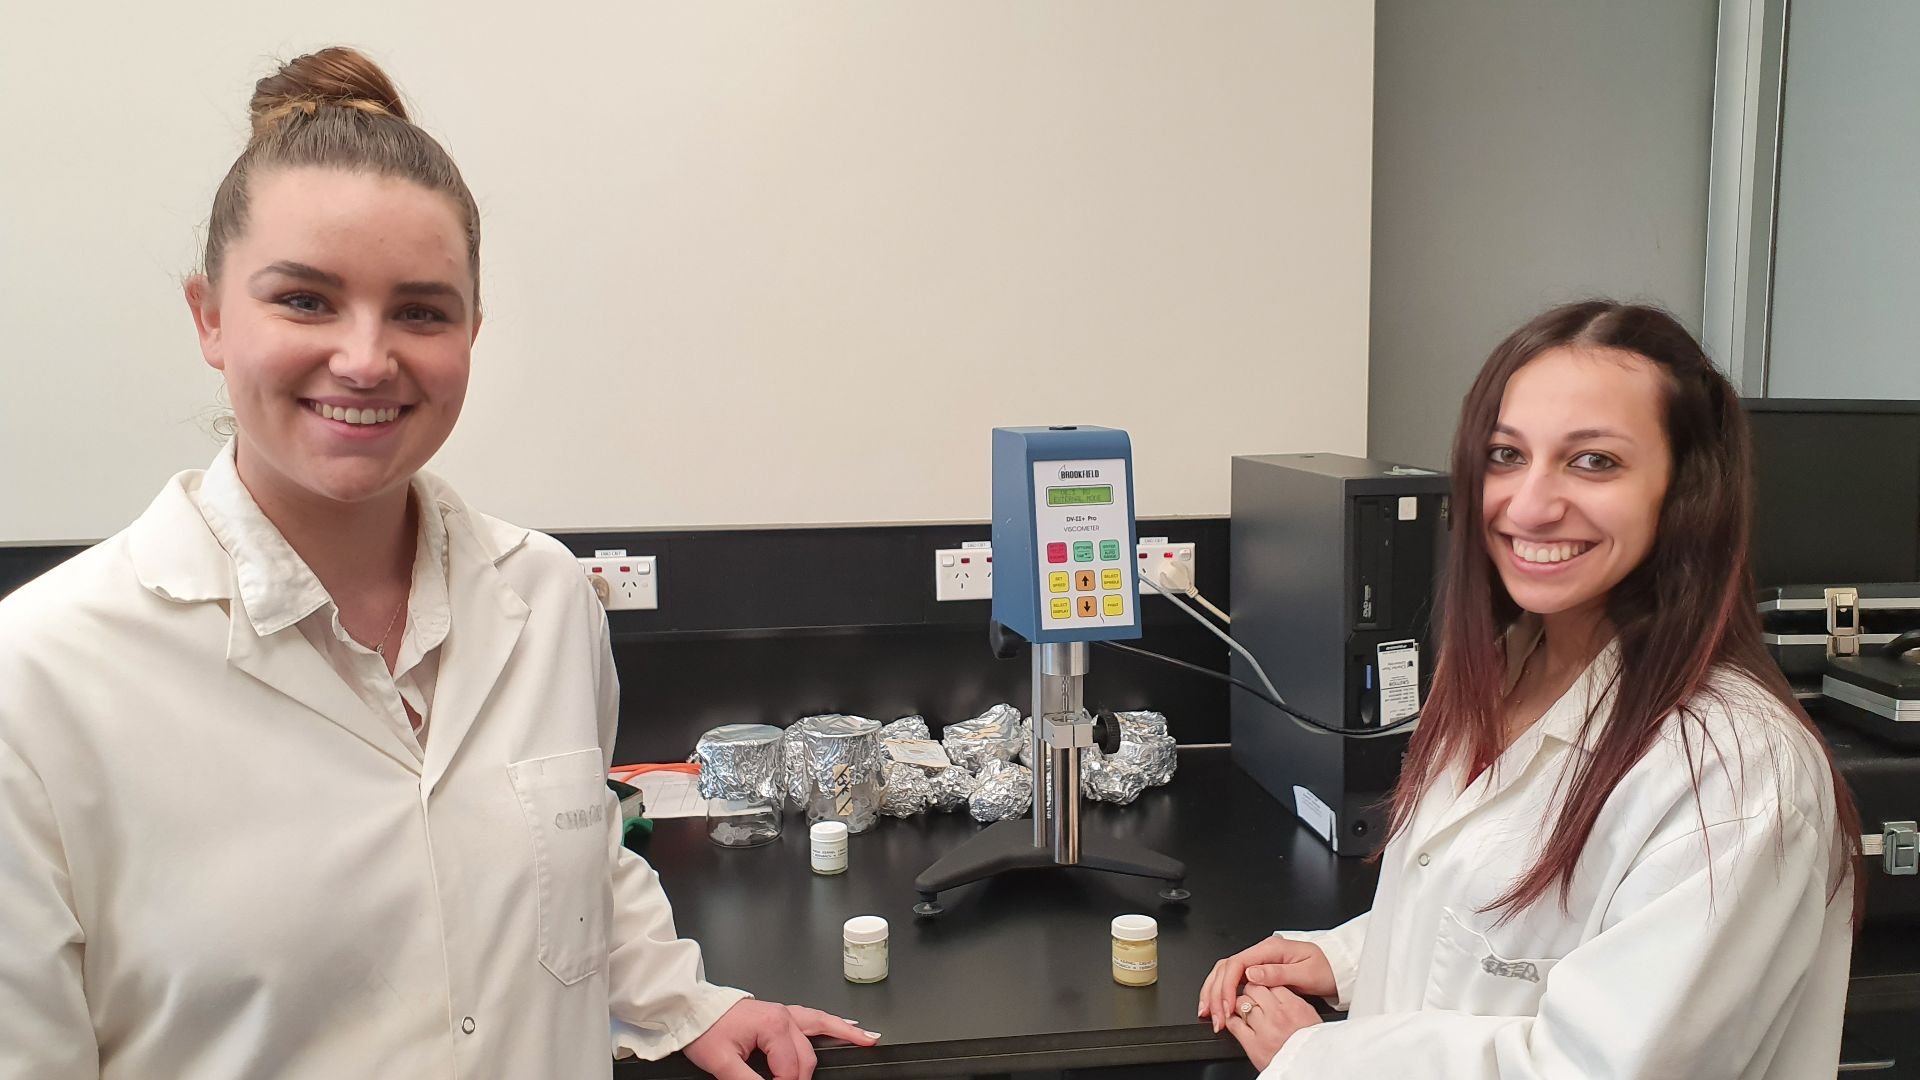 Seeds of success: Students use mango seed waste to create skin care products